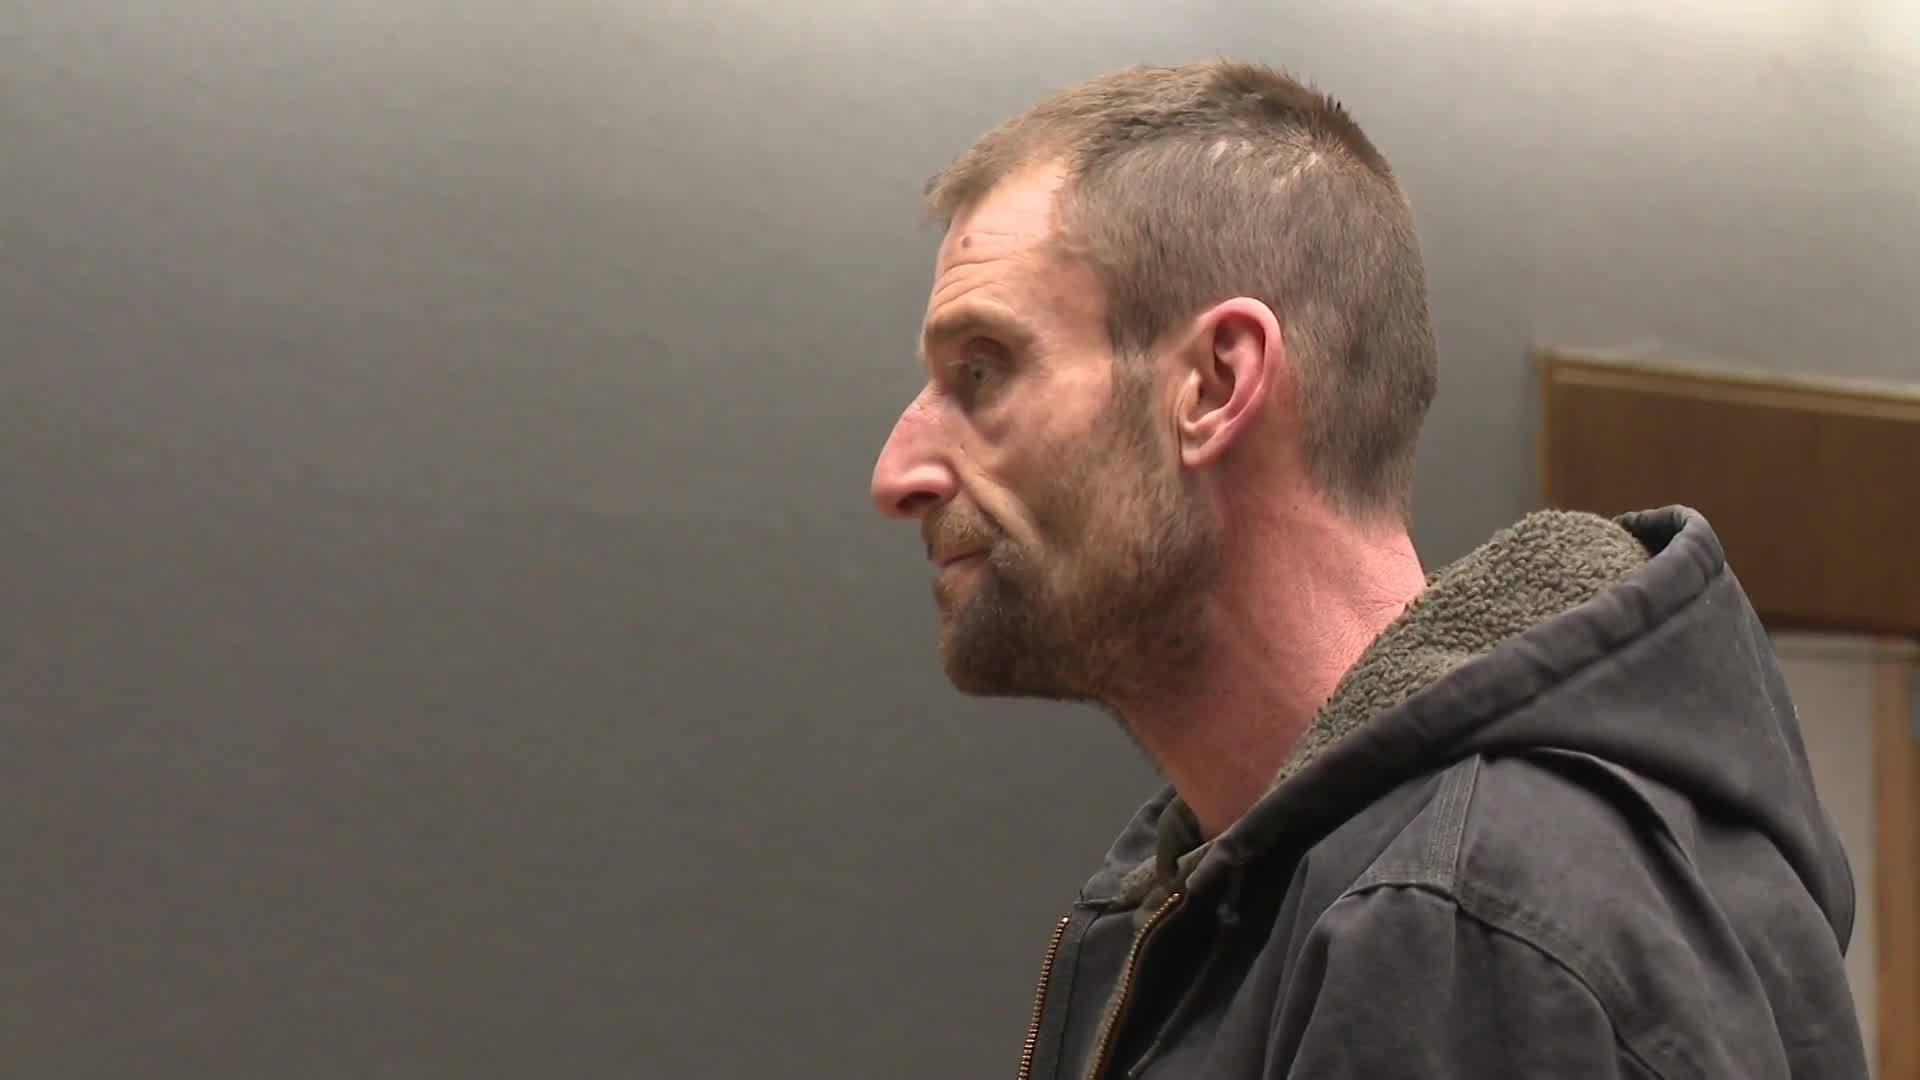 VIDEO NOW: DUI Suspect Appears in Court